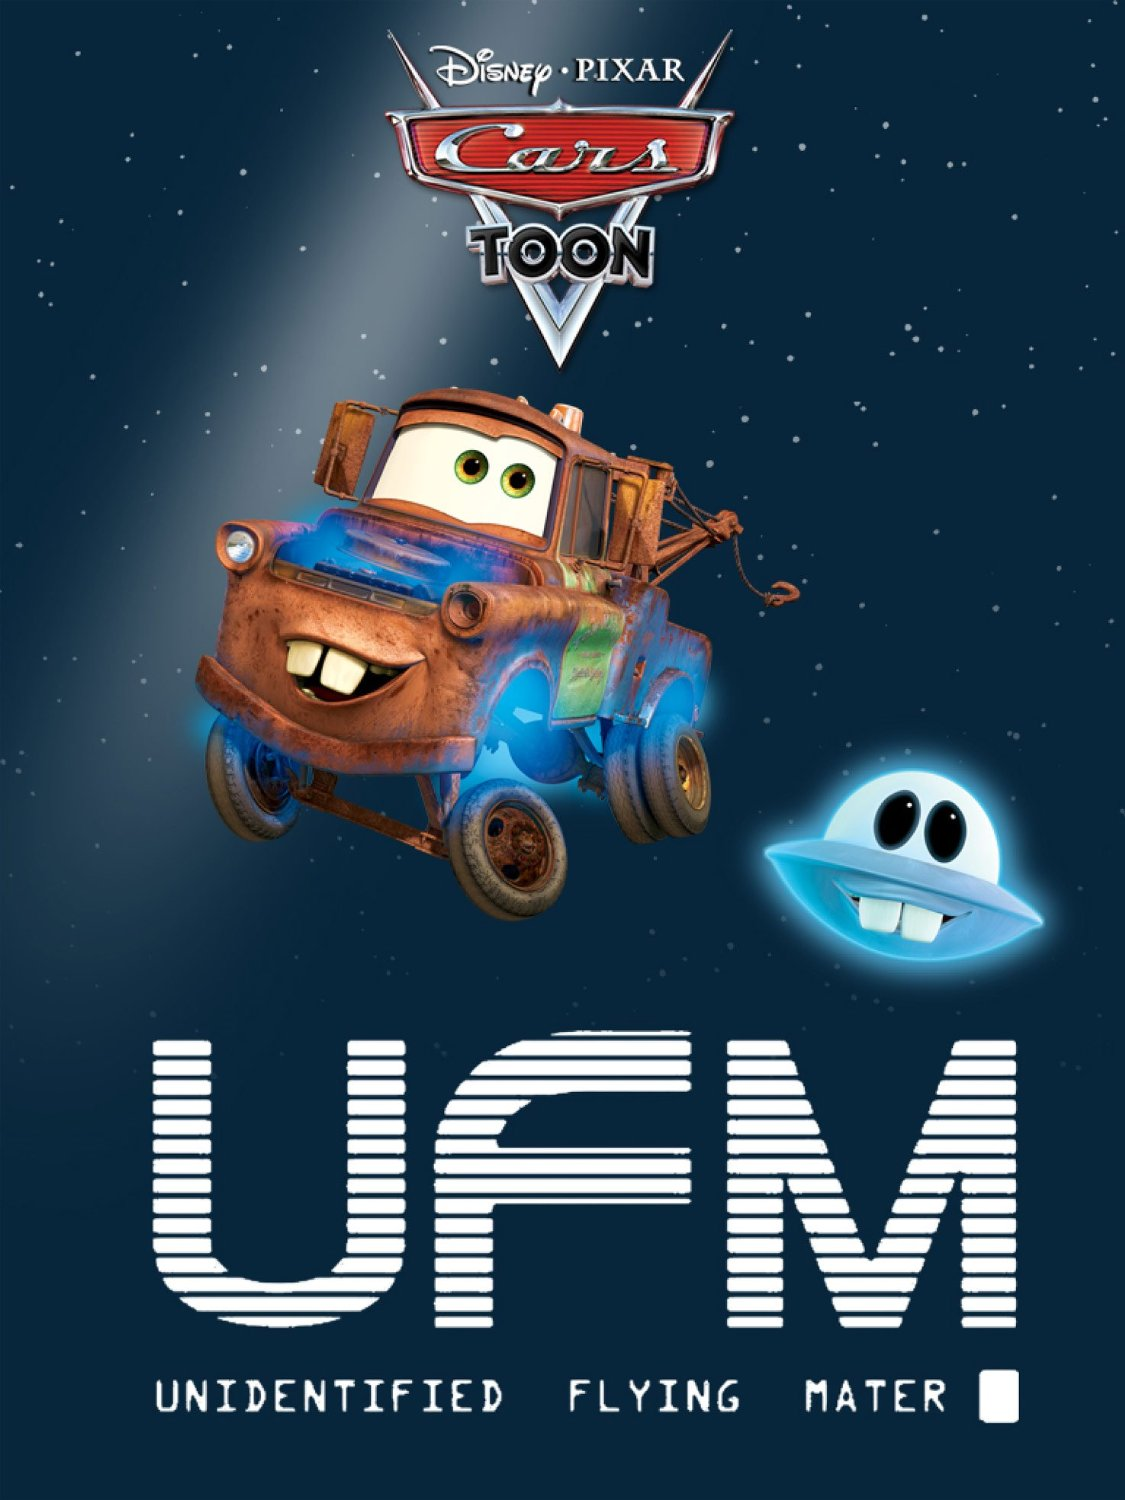 Pixar disney cars toon martin volant non identifié unidentified flying mater affiche poster